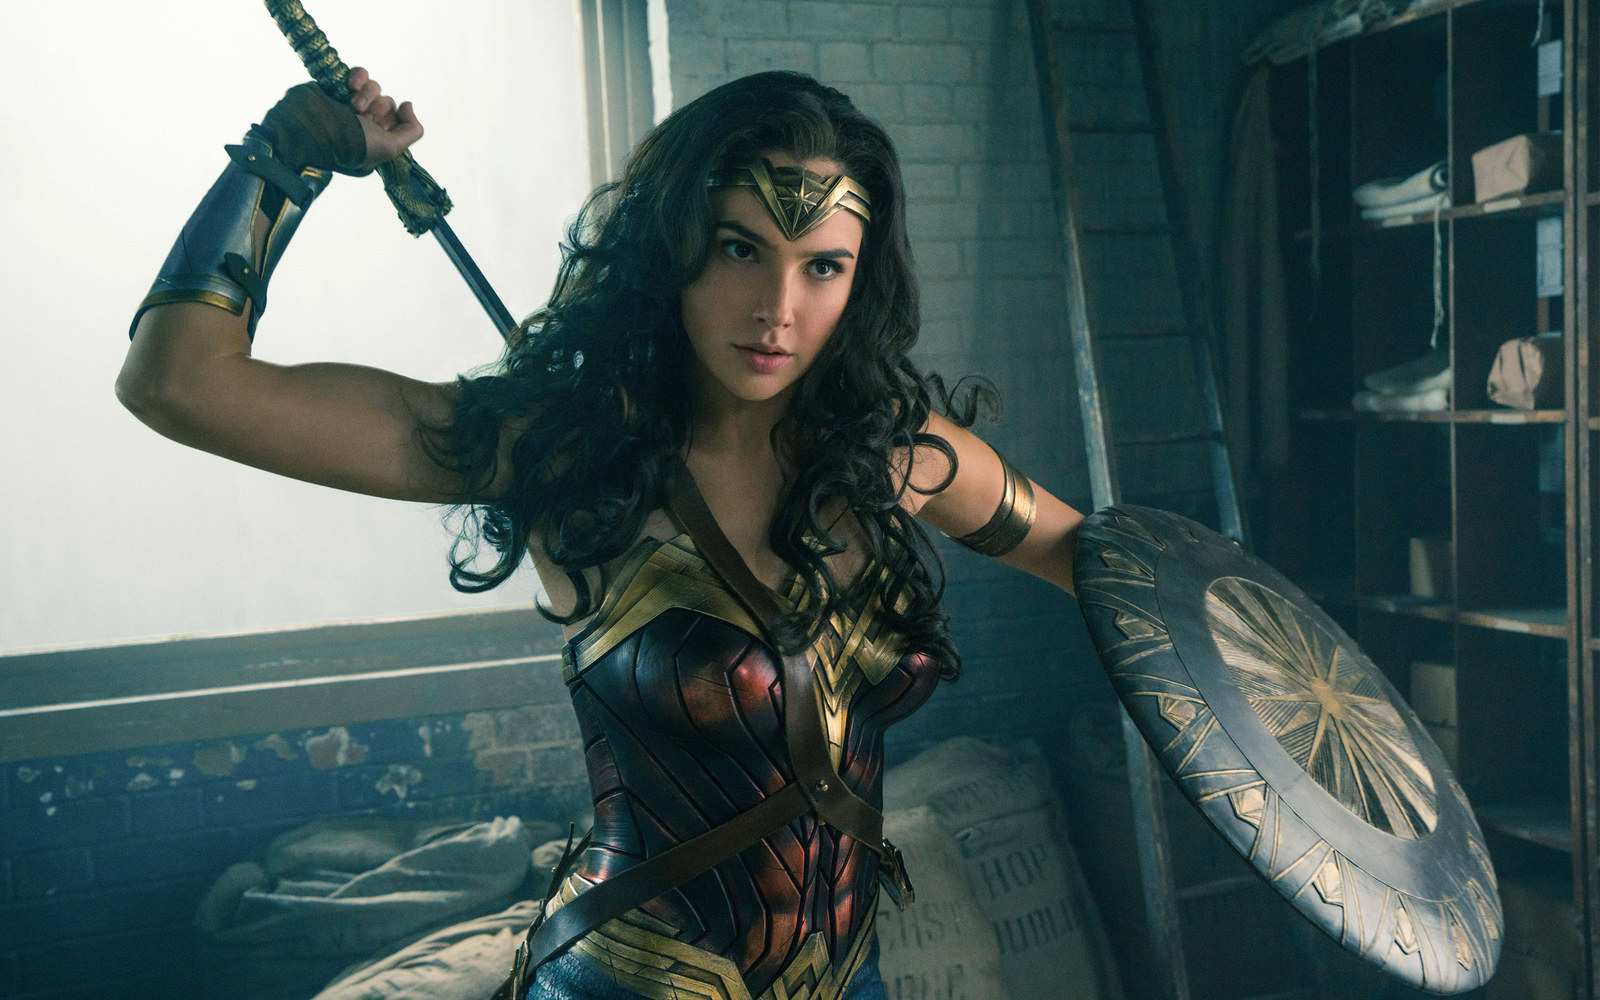 Why it's in first place: From a purely monetary standpoint, Wonder Woman set a new standard for superheroes. Since its May 2017 release, the first major solo female superhero movie in over 10 years has become the most successful live-action movie directed by a woman (director Patty Jenkins) and the highest-grossing superhero origin film in history. Its opening weekend won Jenkins the best domestic box office debut ever for a female director ($103.3M), and its second weekend in theaters only showed a 43.2% drop in box office sales (compared to the usual 59%–60% drop-off).So what made Princess Diana of Themyscira (played by the incredible Gal Gadot) so captivating to audiences? Her bevy of strong female role models? Her unselfconscious belief in love? The way she can casually accessorize her party dress with a sword? Absolutely, all of that.But what truly seems to set Wonder Woman apart is her earnestness. With so much superhero fare on the market, self-aware snark and meta audience nudge-nudging have slowly begun to waterlog the lexicon. It's as if creators can feel the audience's fatigue. But Allan Heinberg keeps the Wonder Woman script focused on Diana's origins as an otherworldly hero who's chosen, and entirely dedicated to, her fate. She's a fighter, first and foremost. Diana's not in the business of deflective quips and one-liners; she's in the business of marching the hell across No Man's Land and saving that village.Wonder Woman is still a funny, light film, balanced with naturally comedic moments — Diana discovers ice cream, loses her shit when she sees a baby, and wonders how women do battle in such constrictive modern clothing — but Jenkins doesn't shy away from letting her lead, and the audience, feel. She wisely leans into what might read as cheesy under a less deft hand. It works, well, wonderfully.Worldwide box office earnings: $821 millionRotten Tomatoes rating: 92%